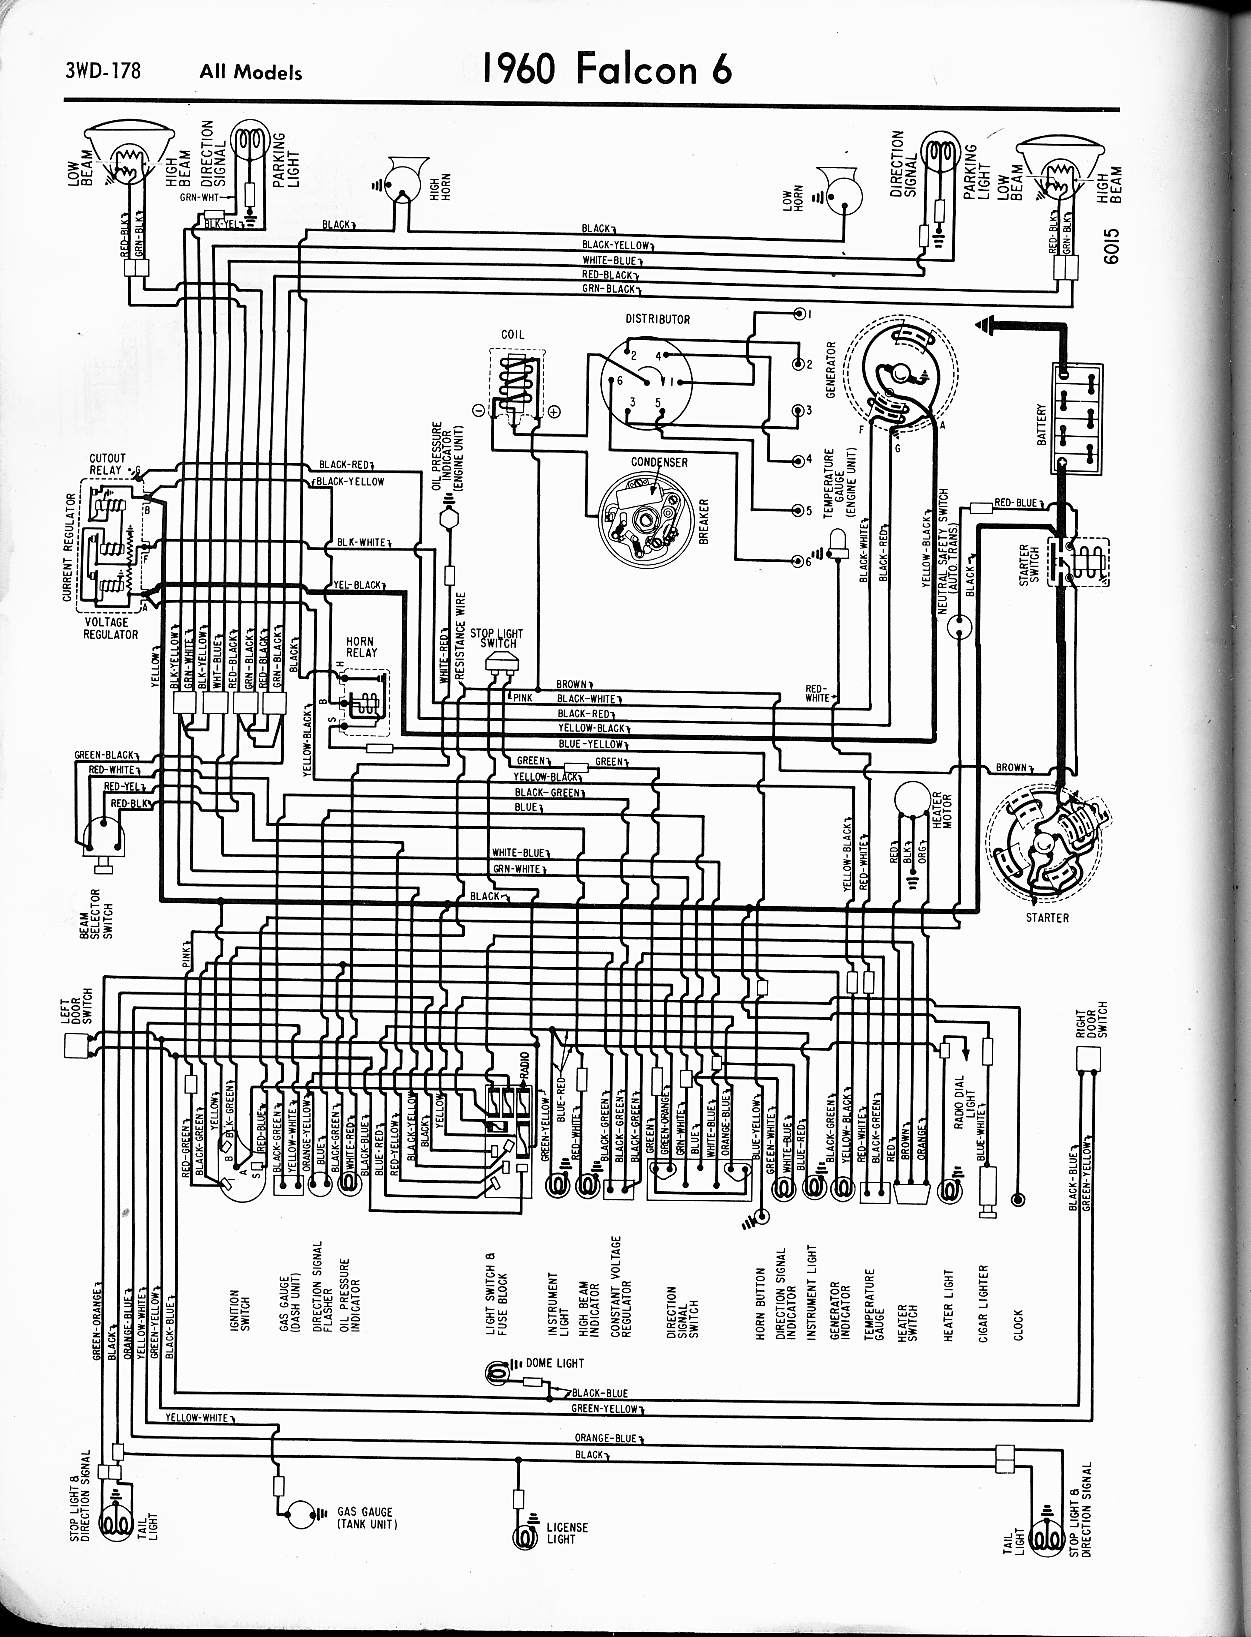 abs wiring diagram view diagram diagram fairmont ford wiring bf rh abetter pw